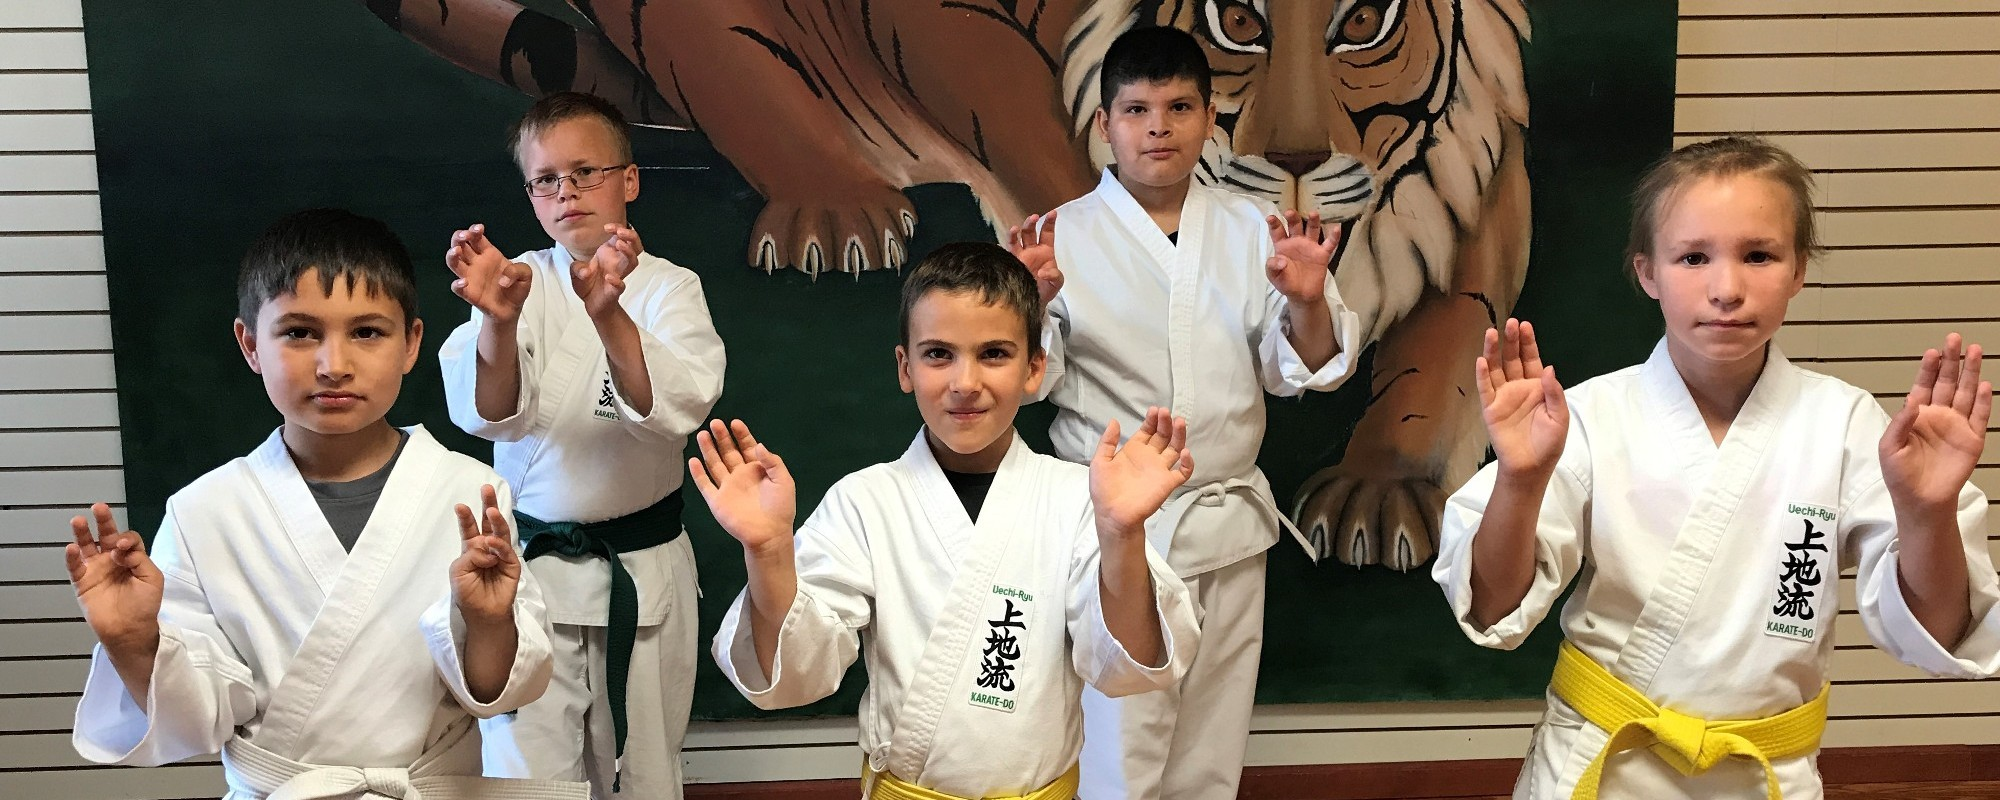 We teach Okinawan karate exercises in Kalamazoo, MI, to children and adults